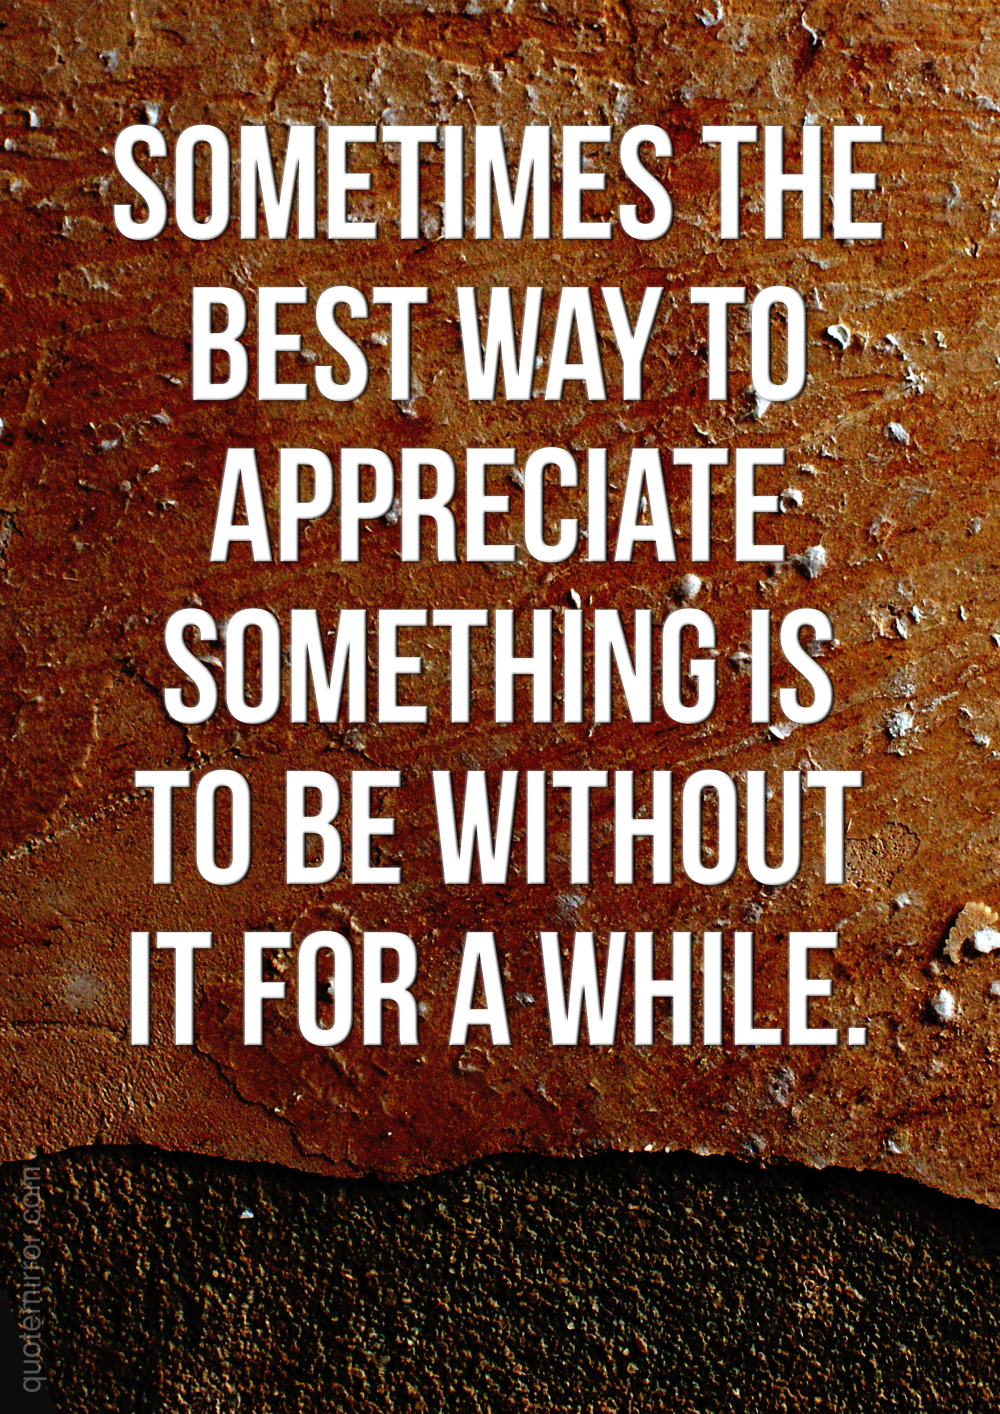 Sometimes the best way to appreciate something is to be without it for a while.  – #appreciation #attachment #wisdom http://www.quotemirror.com/proverbs/the-best-way/